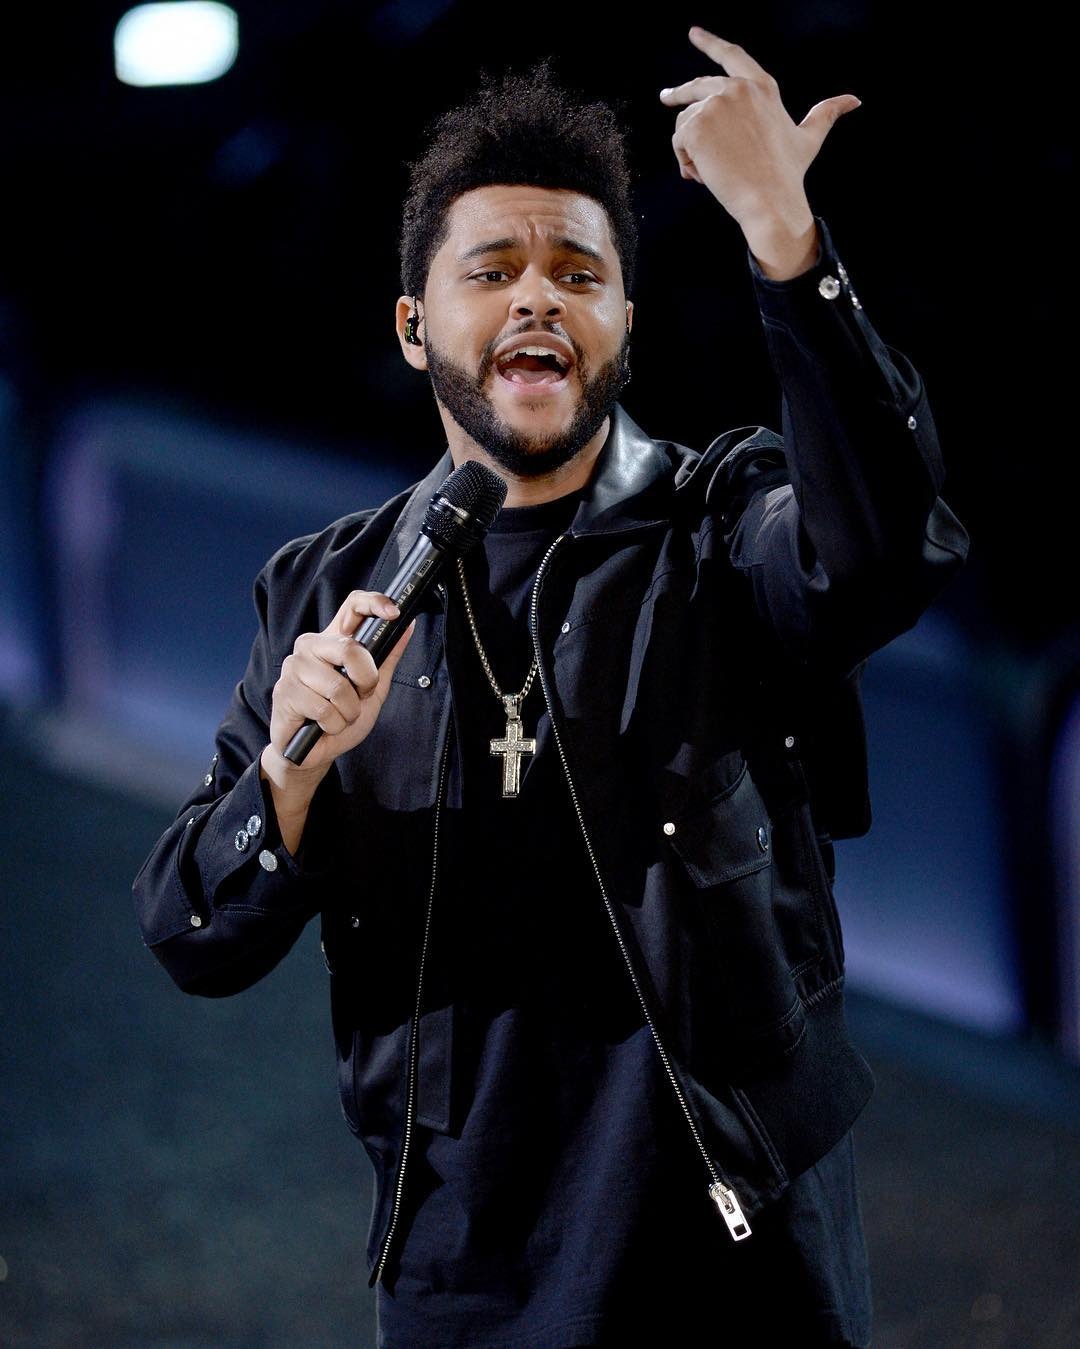 the-weeknd-givenchy-jacket-shoes-5